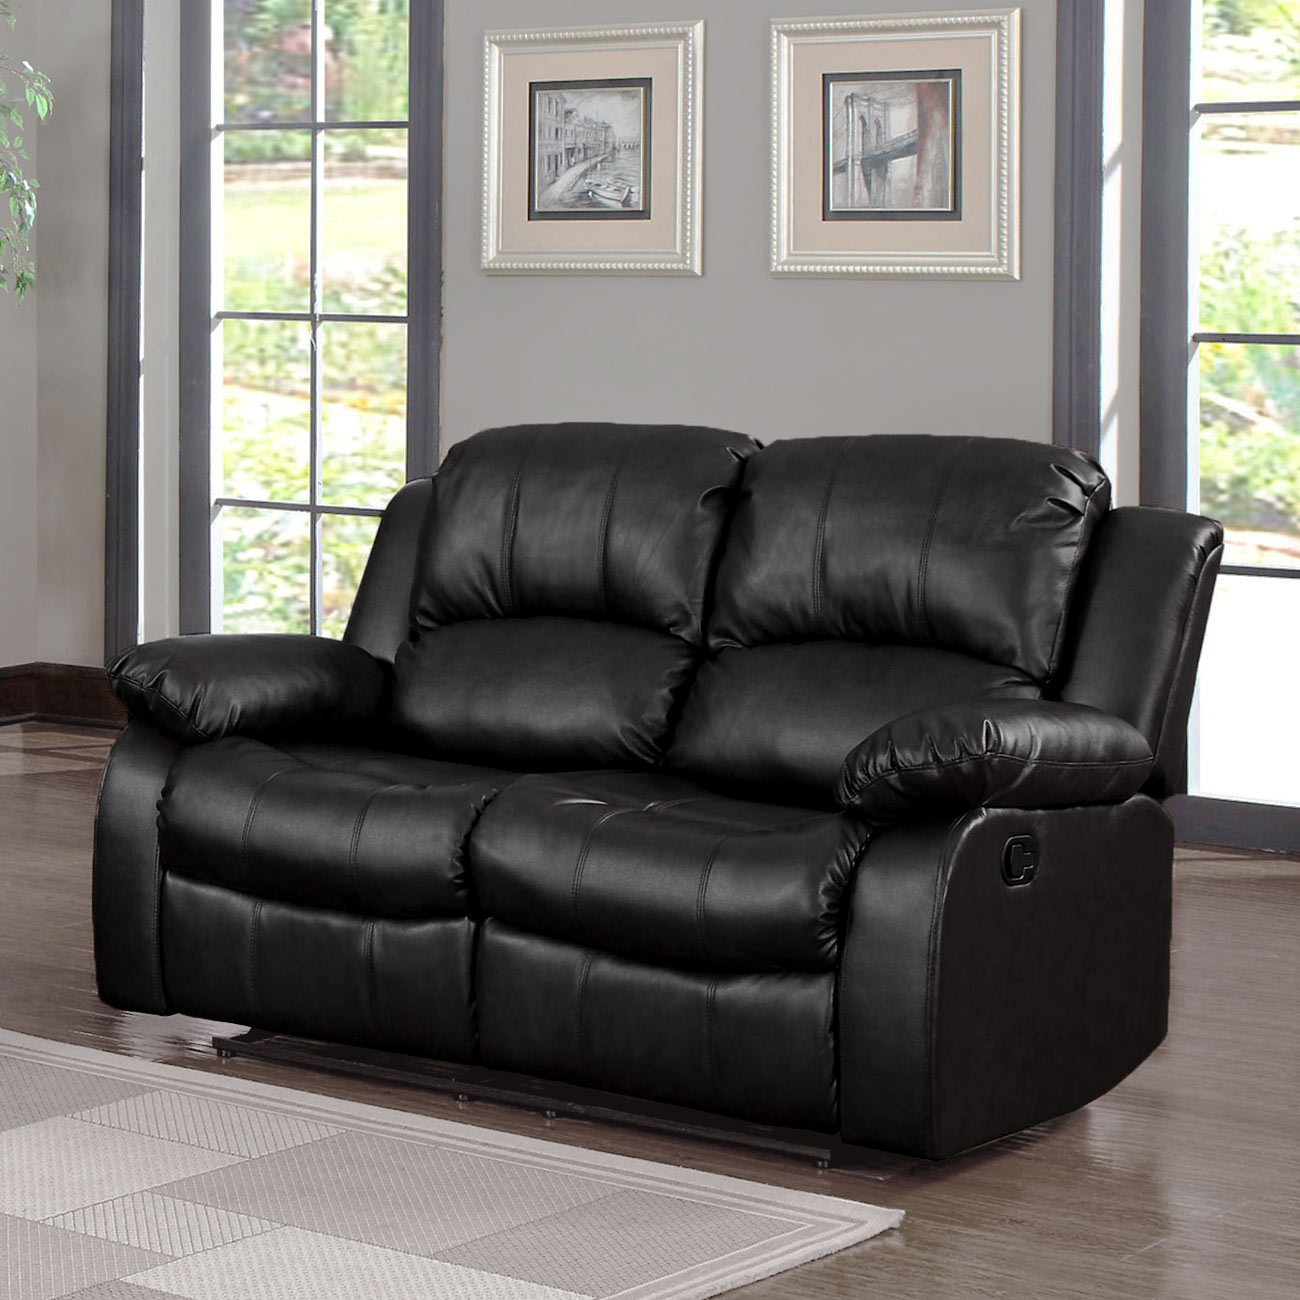 Classic Oversize And Overstuffed 2 Seat Bonded Leather Double Recliner Loveseat Black Walmart Com Walmart Com